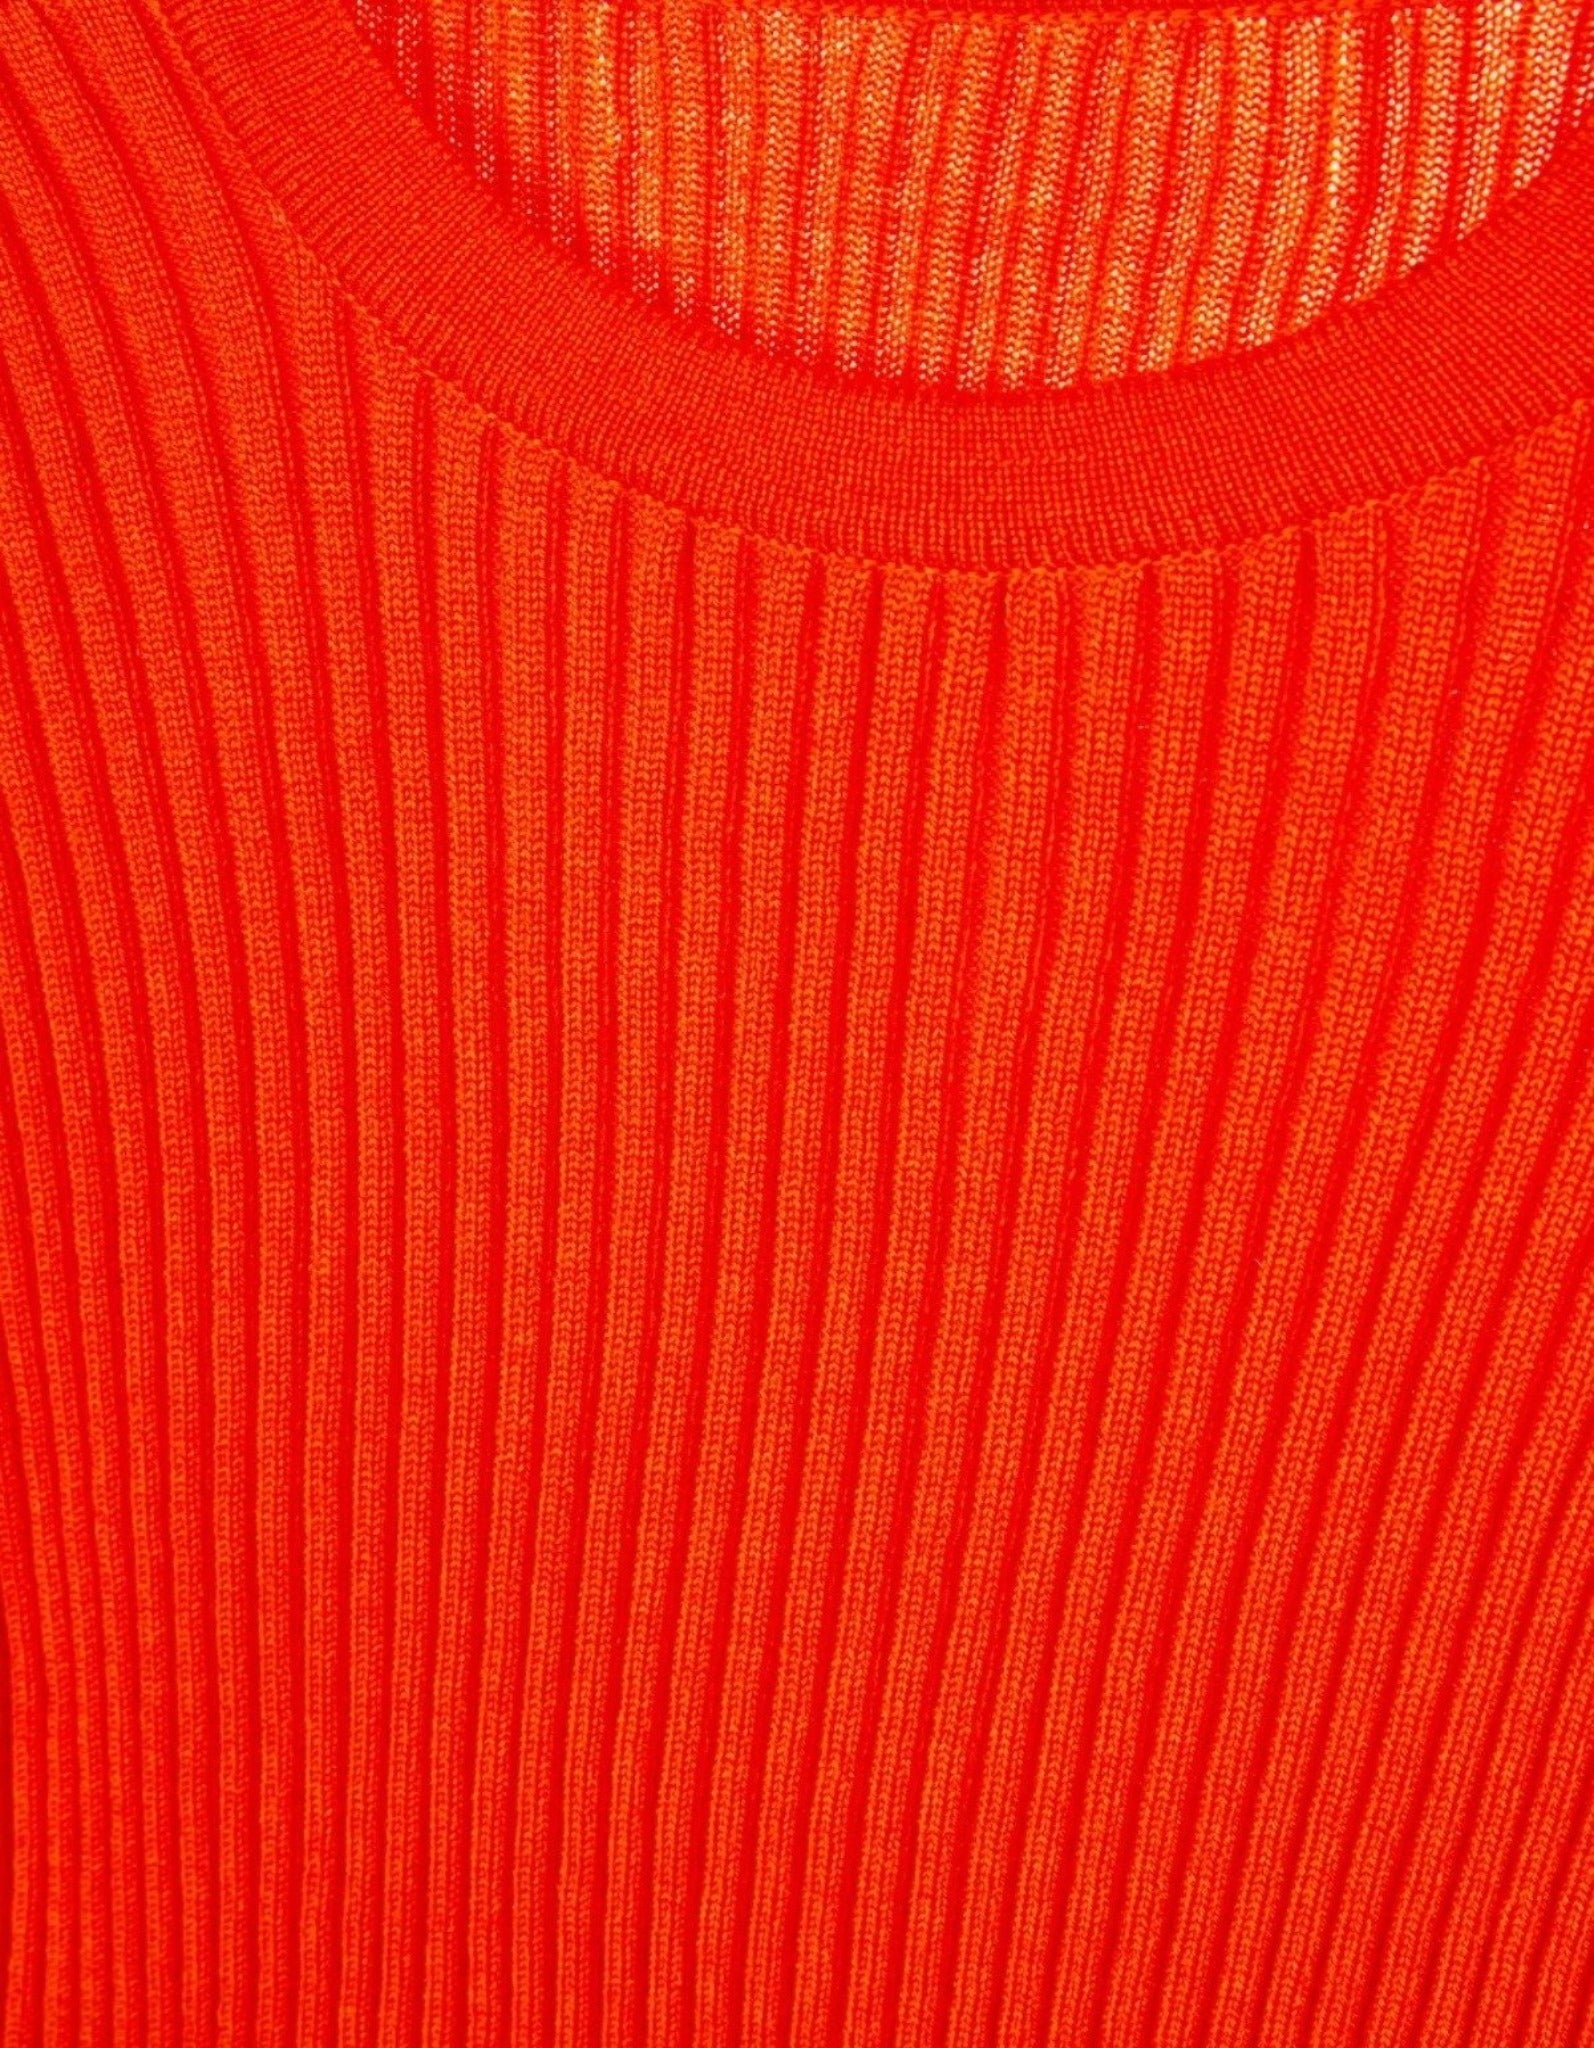 M'A KIDS CREW NECK IN ORANGE